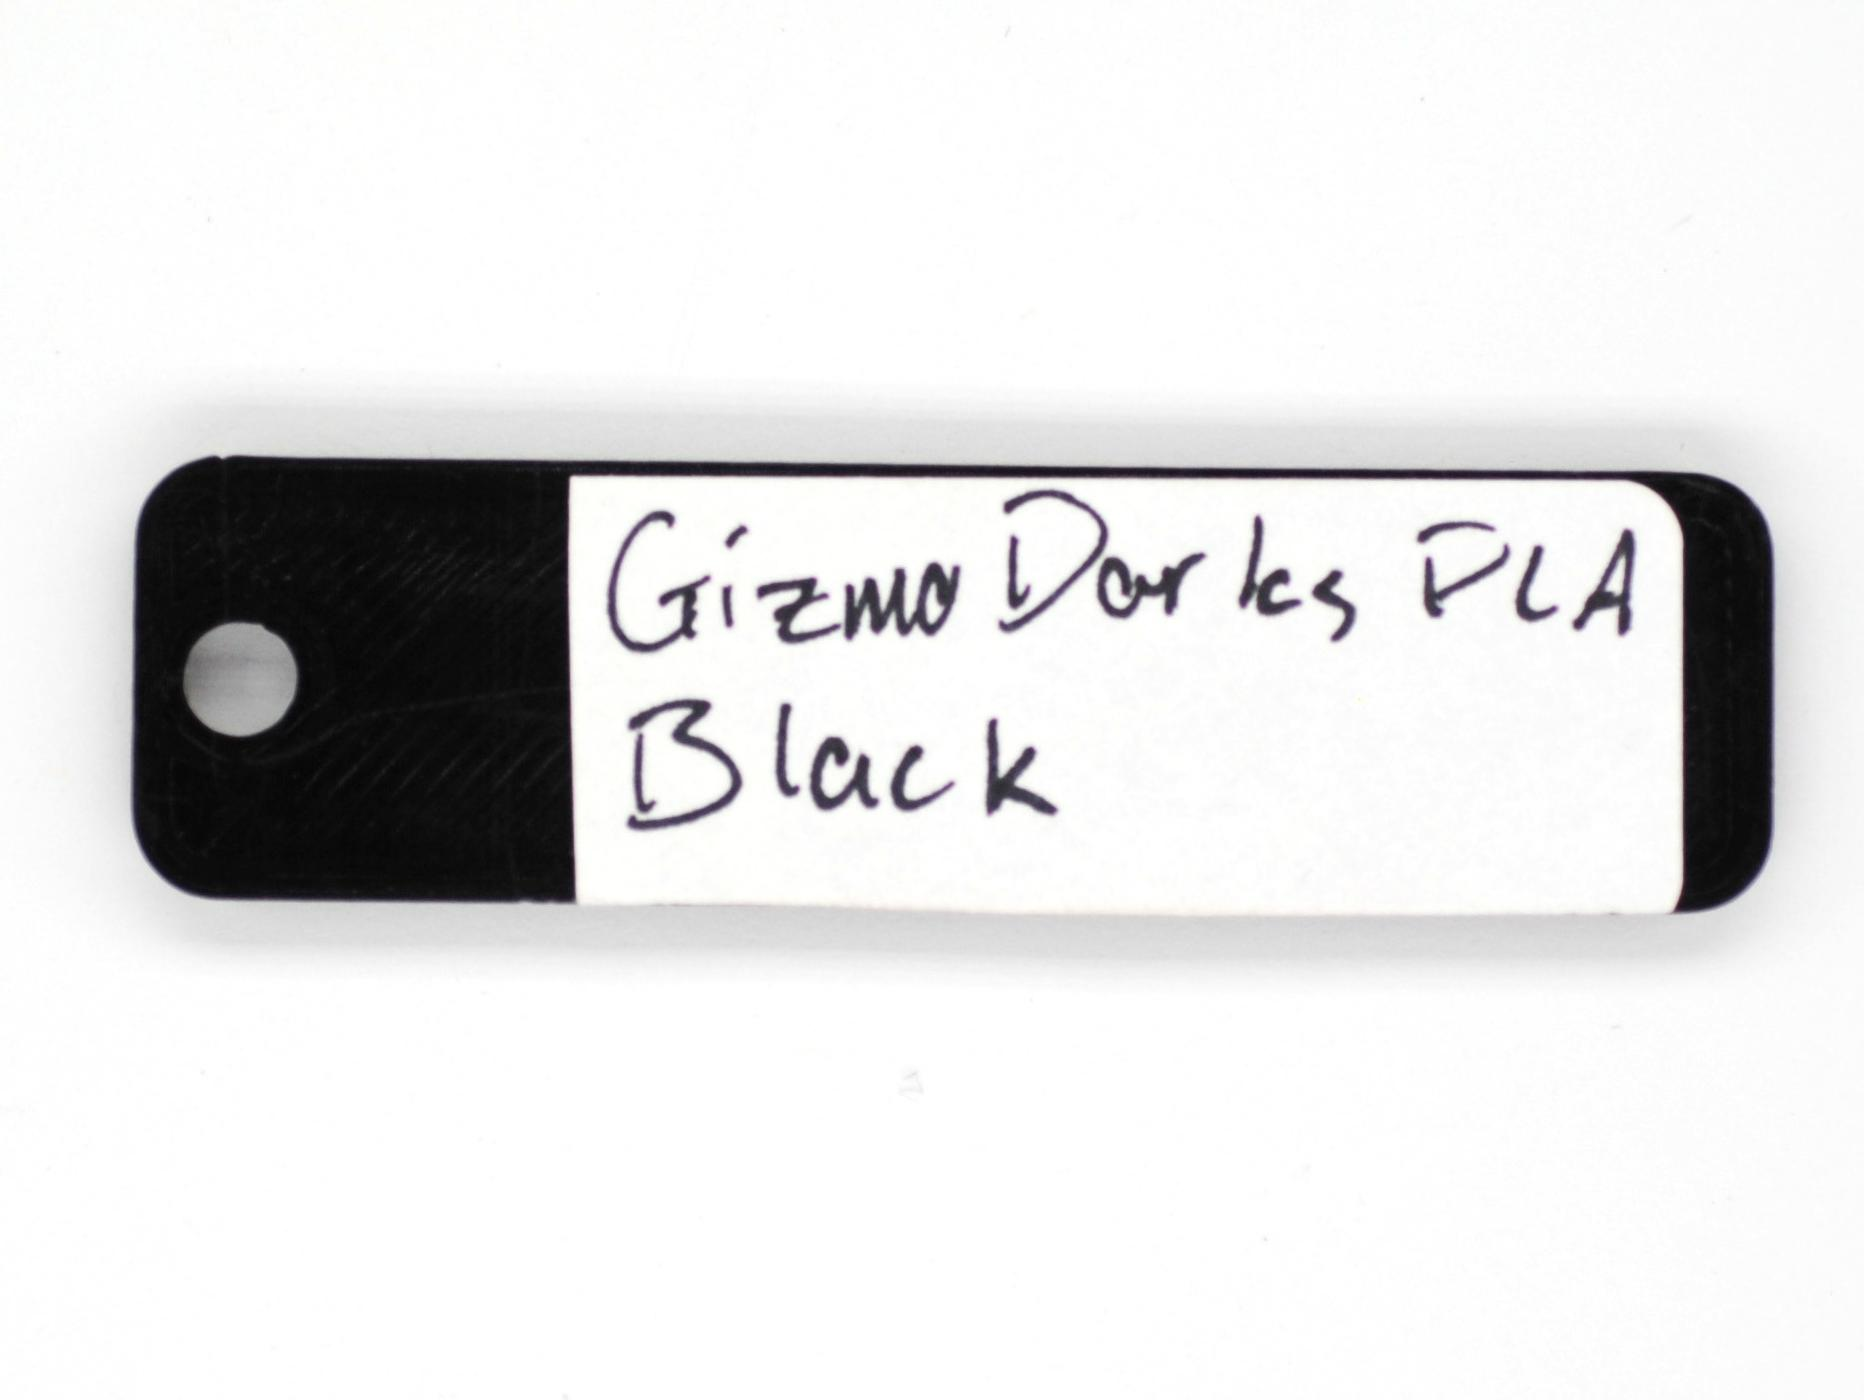 An image of the back of a color swatch, with the manufacturer, type, and color written on it.